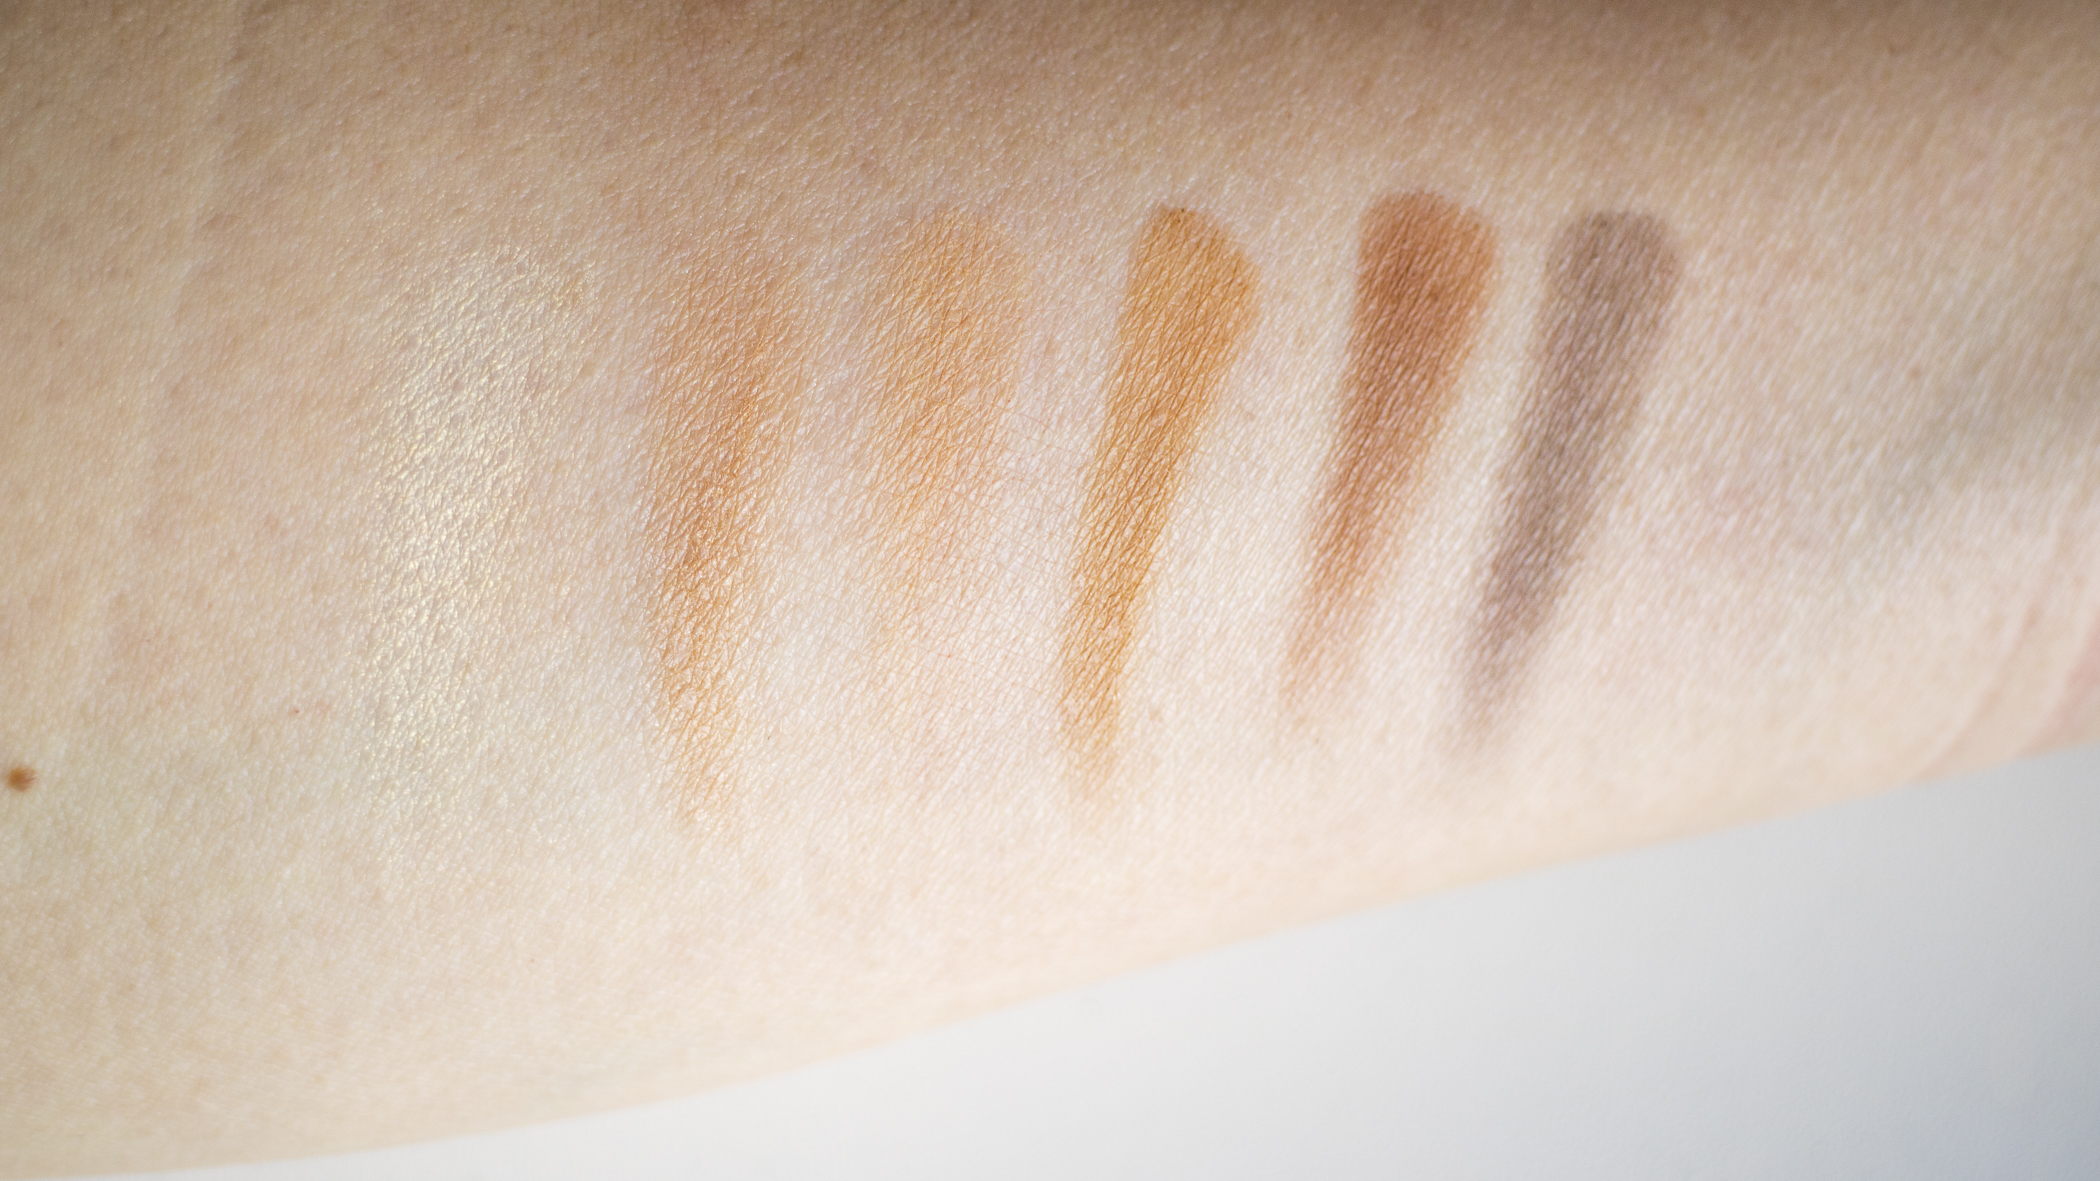 The Legacy Palette Eyeshadow Swatches Top Row (From L to R): Iced Gold, Champagne, Wheat, Camel, Coco, Dark Chocolate